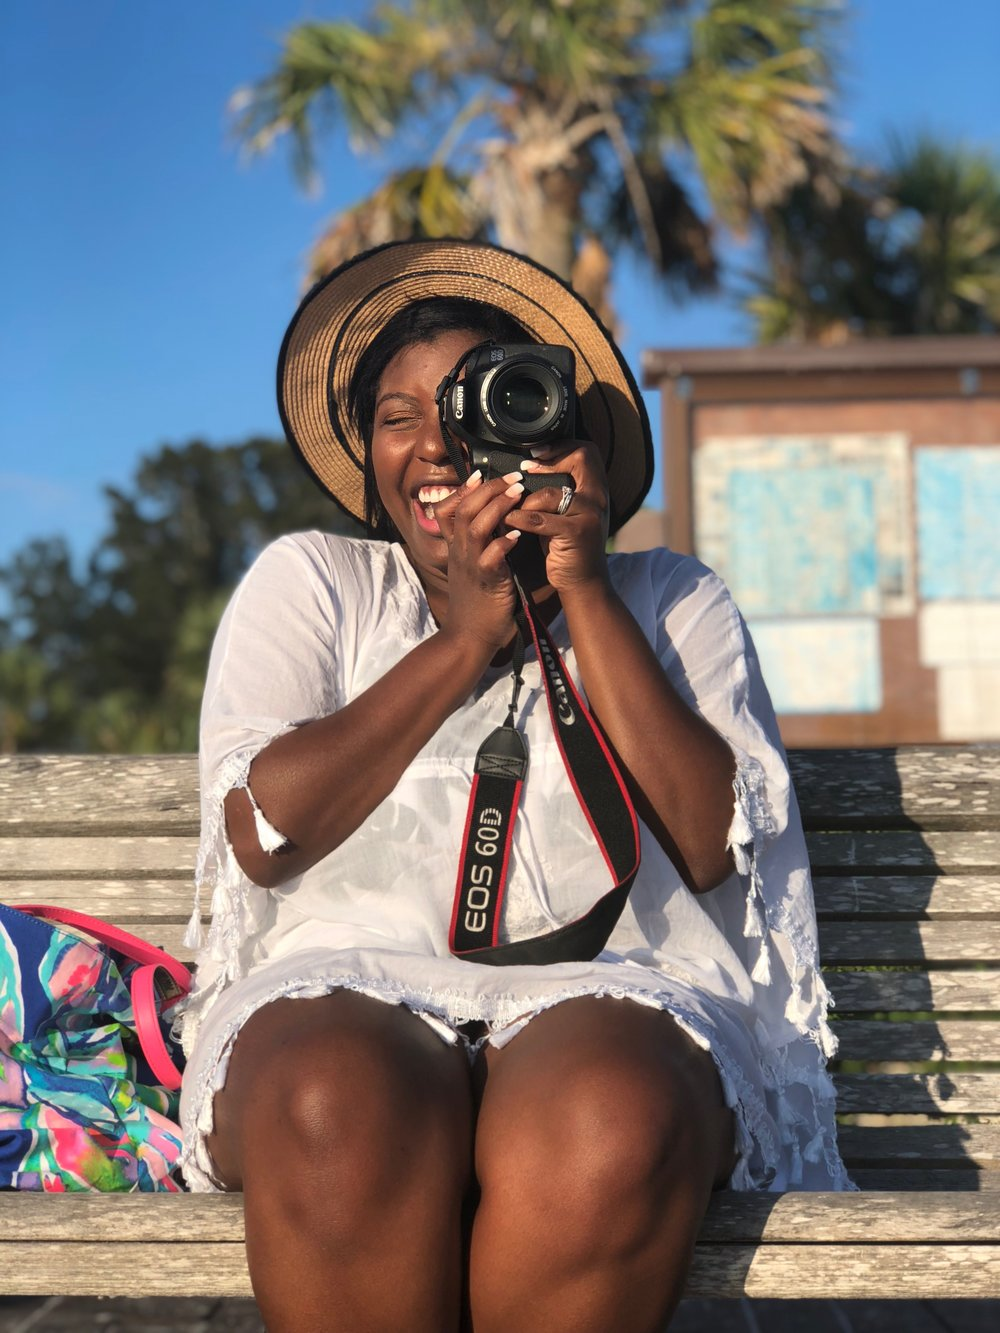 Tampa blogger Ayana Lage sits on a bench in Tarpon Springs, Florida. She is holding a Canon 60D camera while smiling at the camera. There is a Lilly Pulitzer Multi Casa Del Sol bag on the bench next to her.